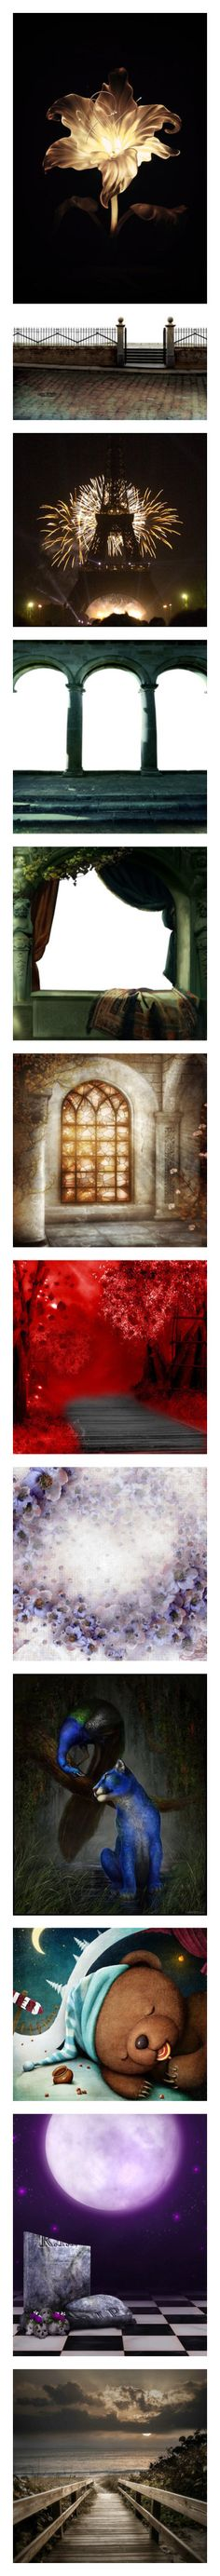 """backgrounds"" by callmerose ❤ liked on Polyvore featuring backgrounds, disney, rapunzel, tangled, fairytale, fotki, tubes, pictures, photo and cities"